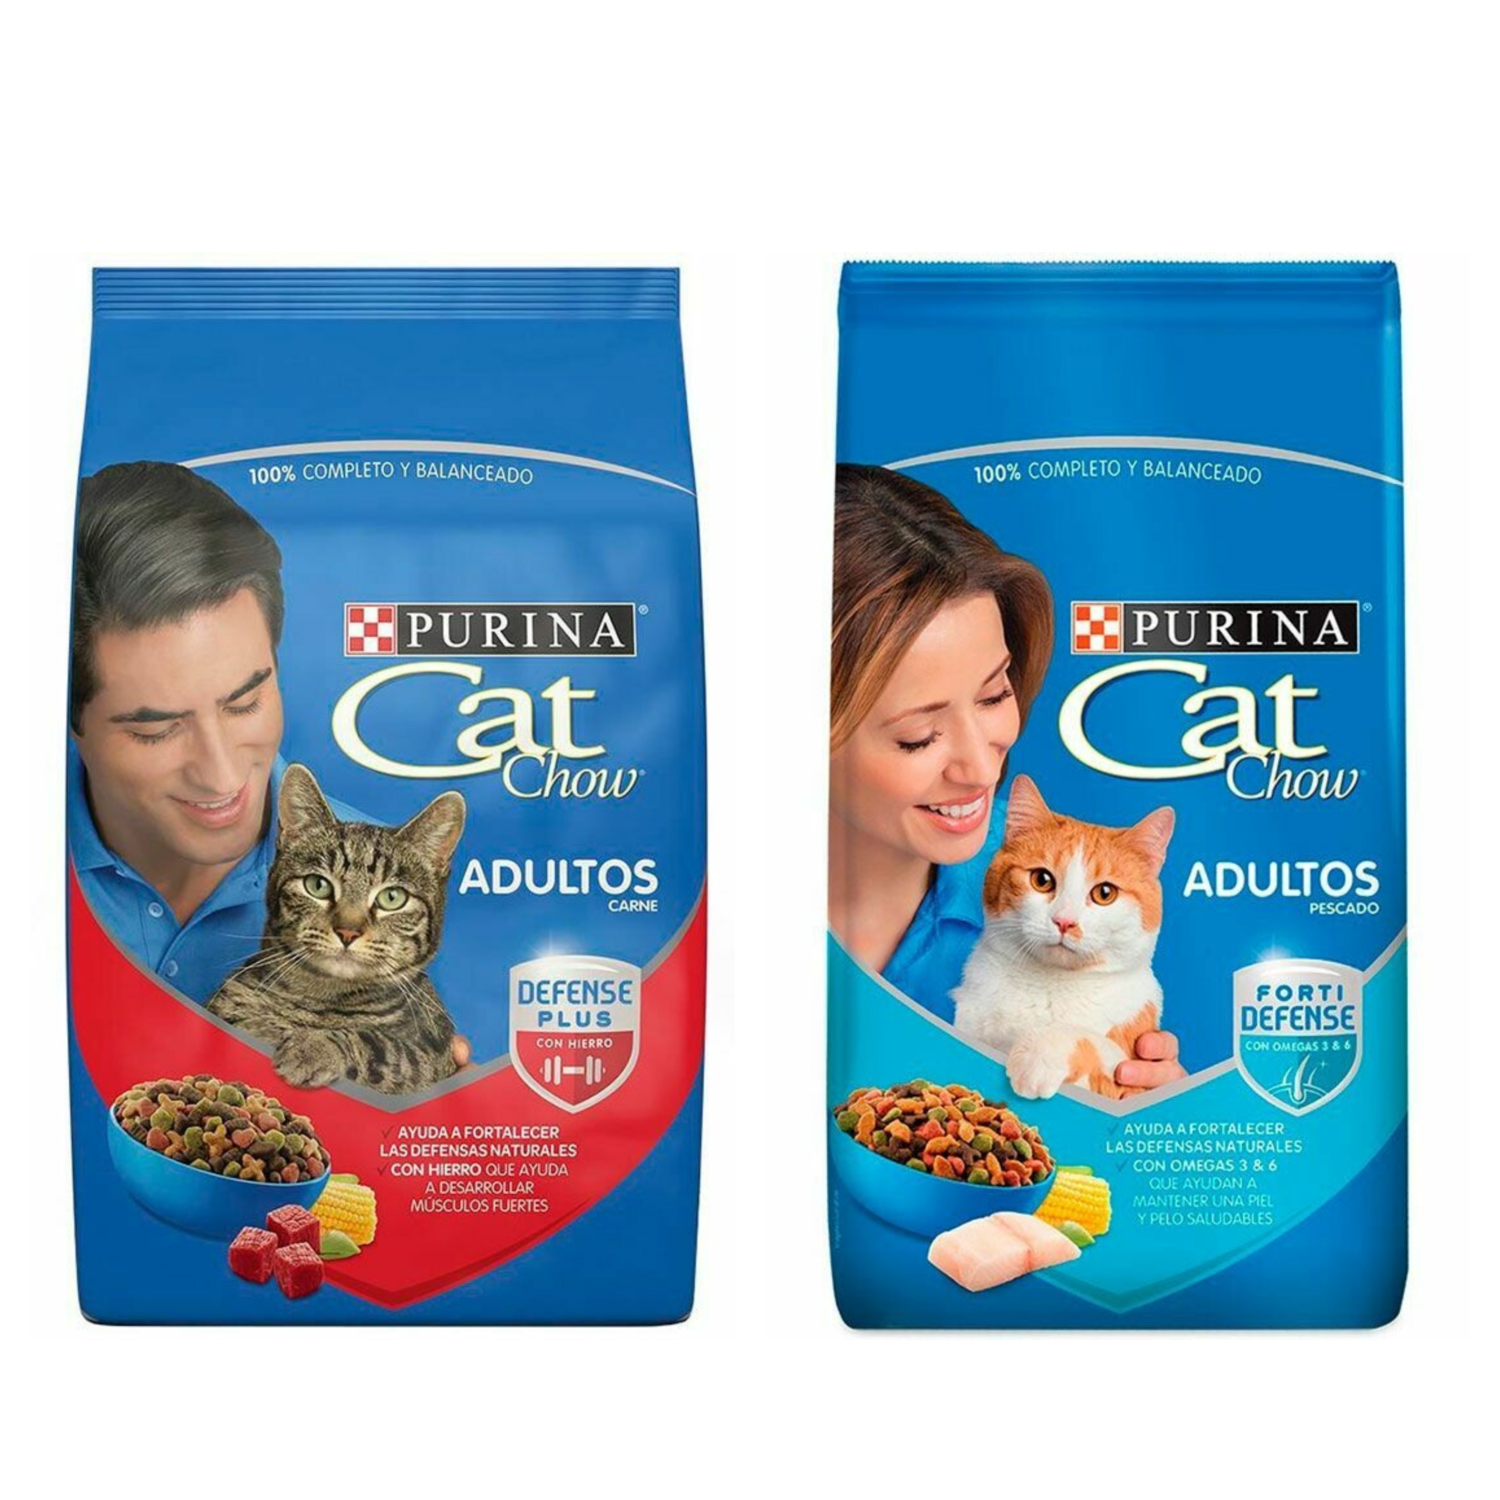 Croquetas Purina Cat Chow adultos